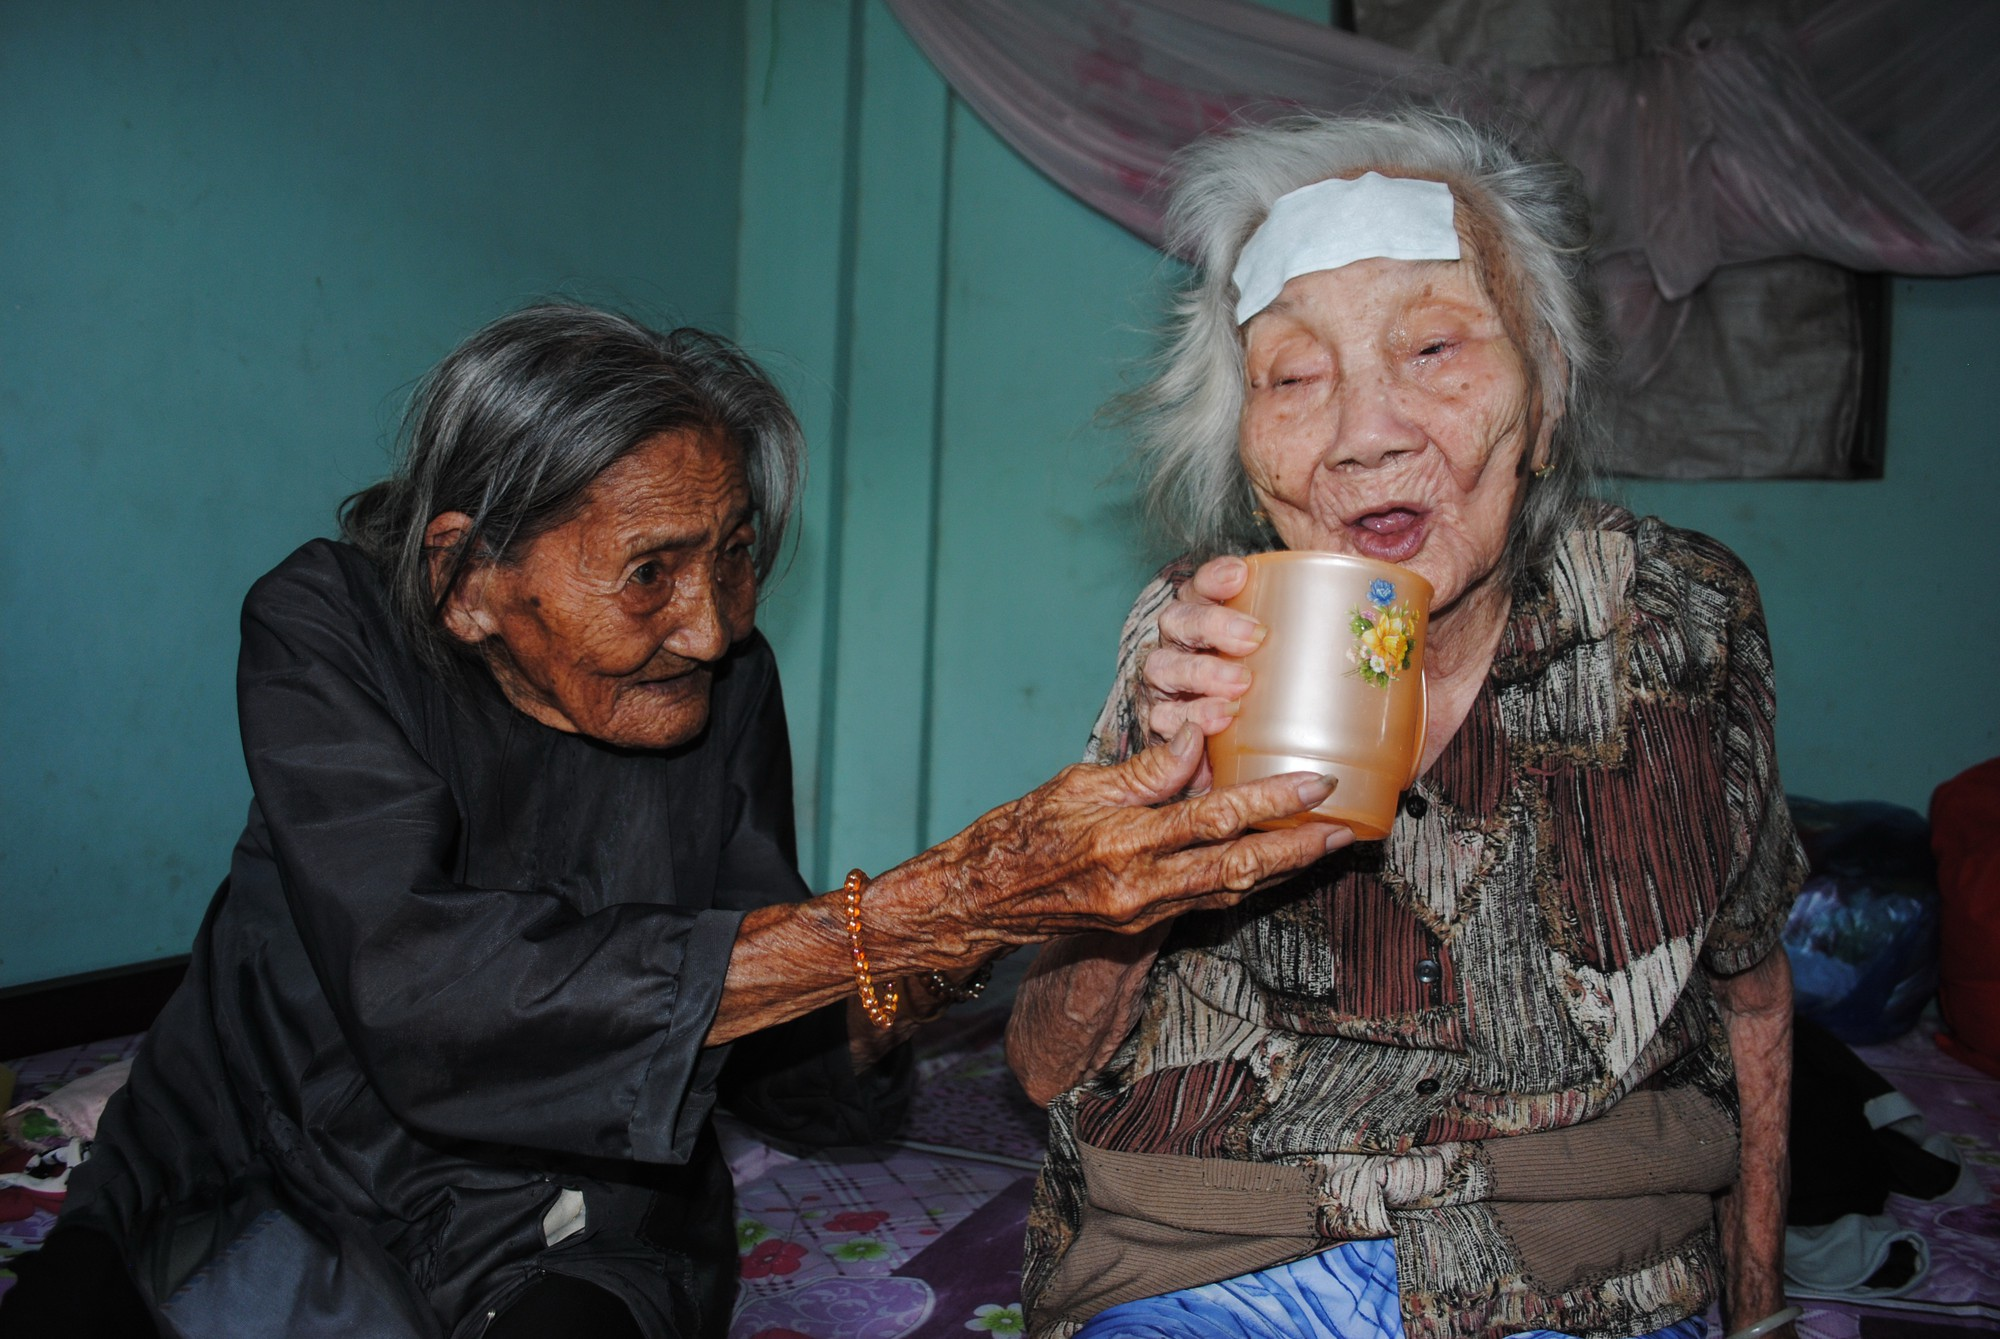 Nonagenarian woman sells lottery tickets to support elder sister in Vietnam